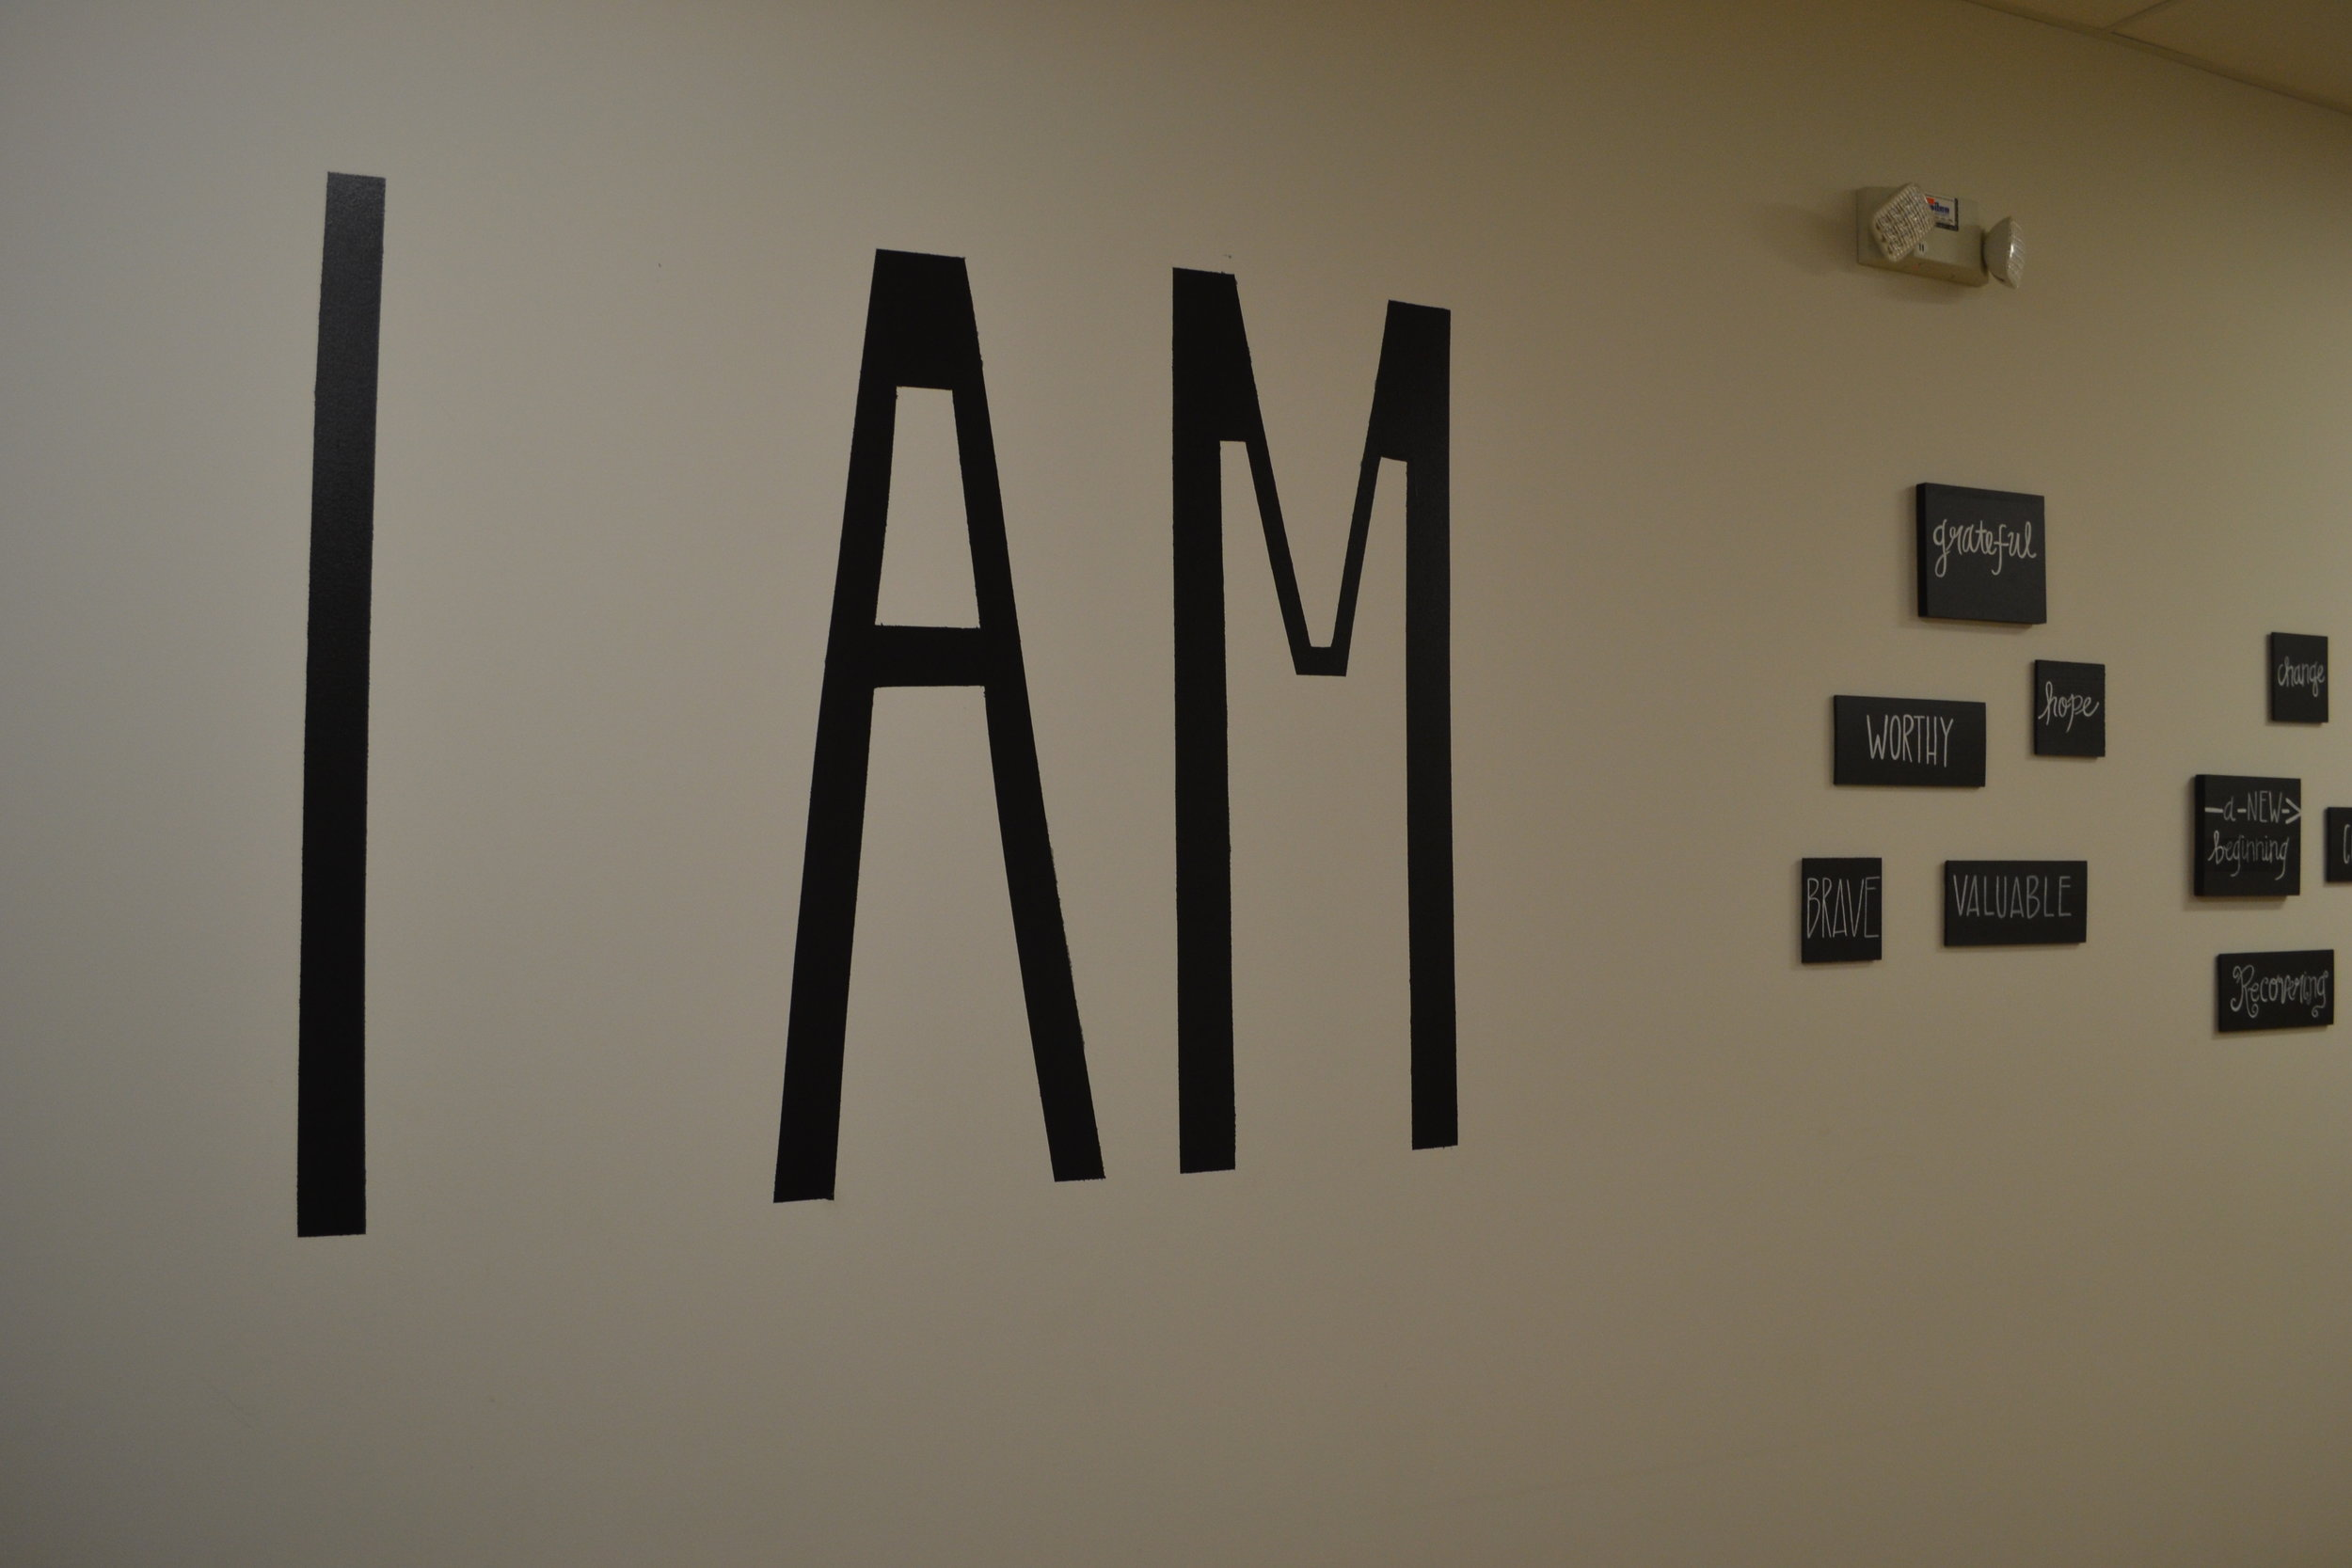 'I Am' wall inside the Off The Streets building